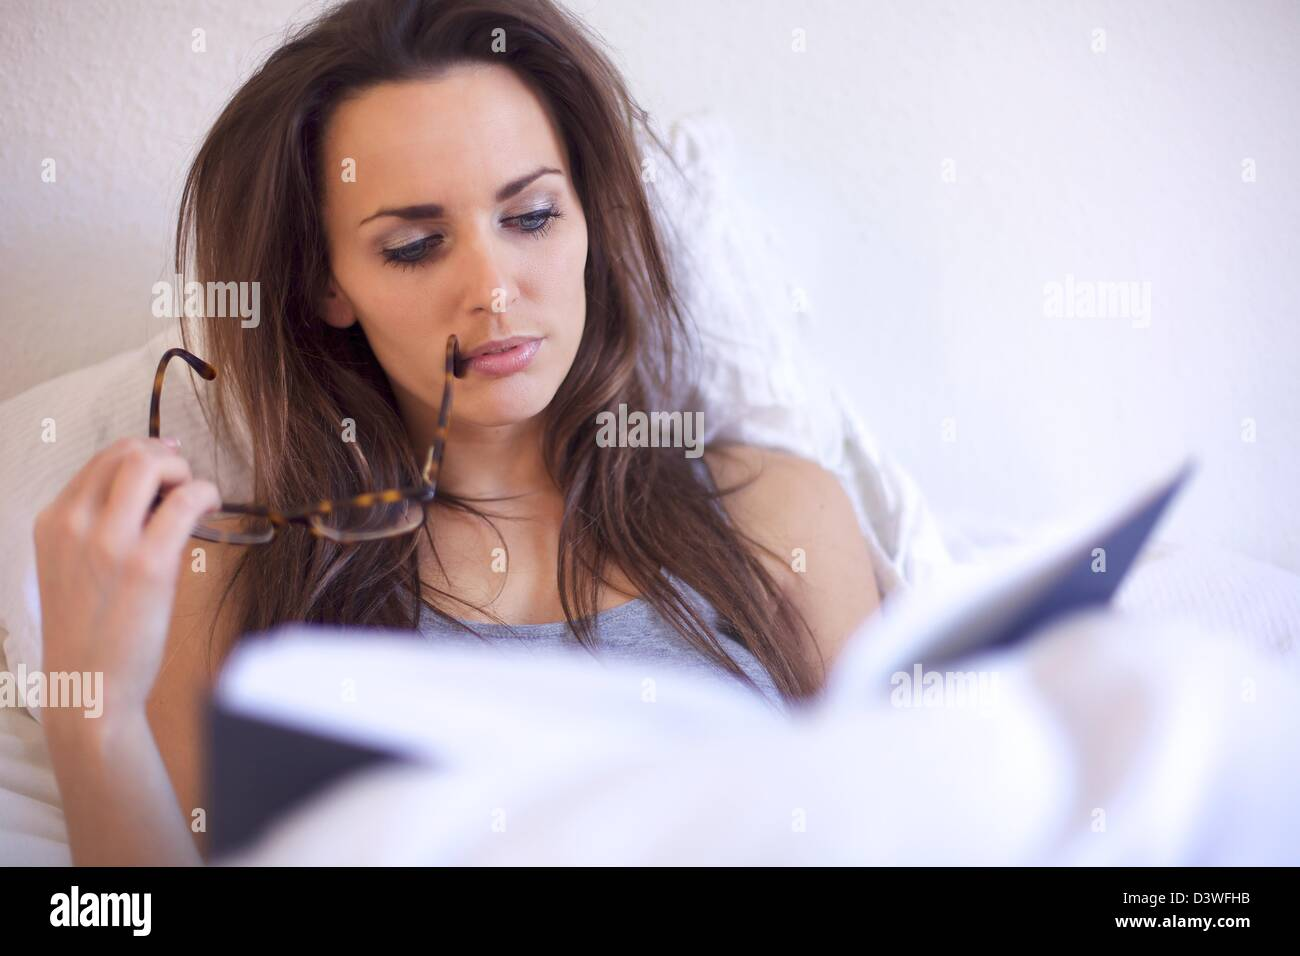 Brunette woman engrossed in reading a book while in her room - Stock Image